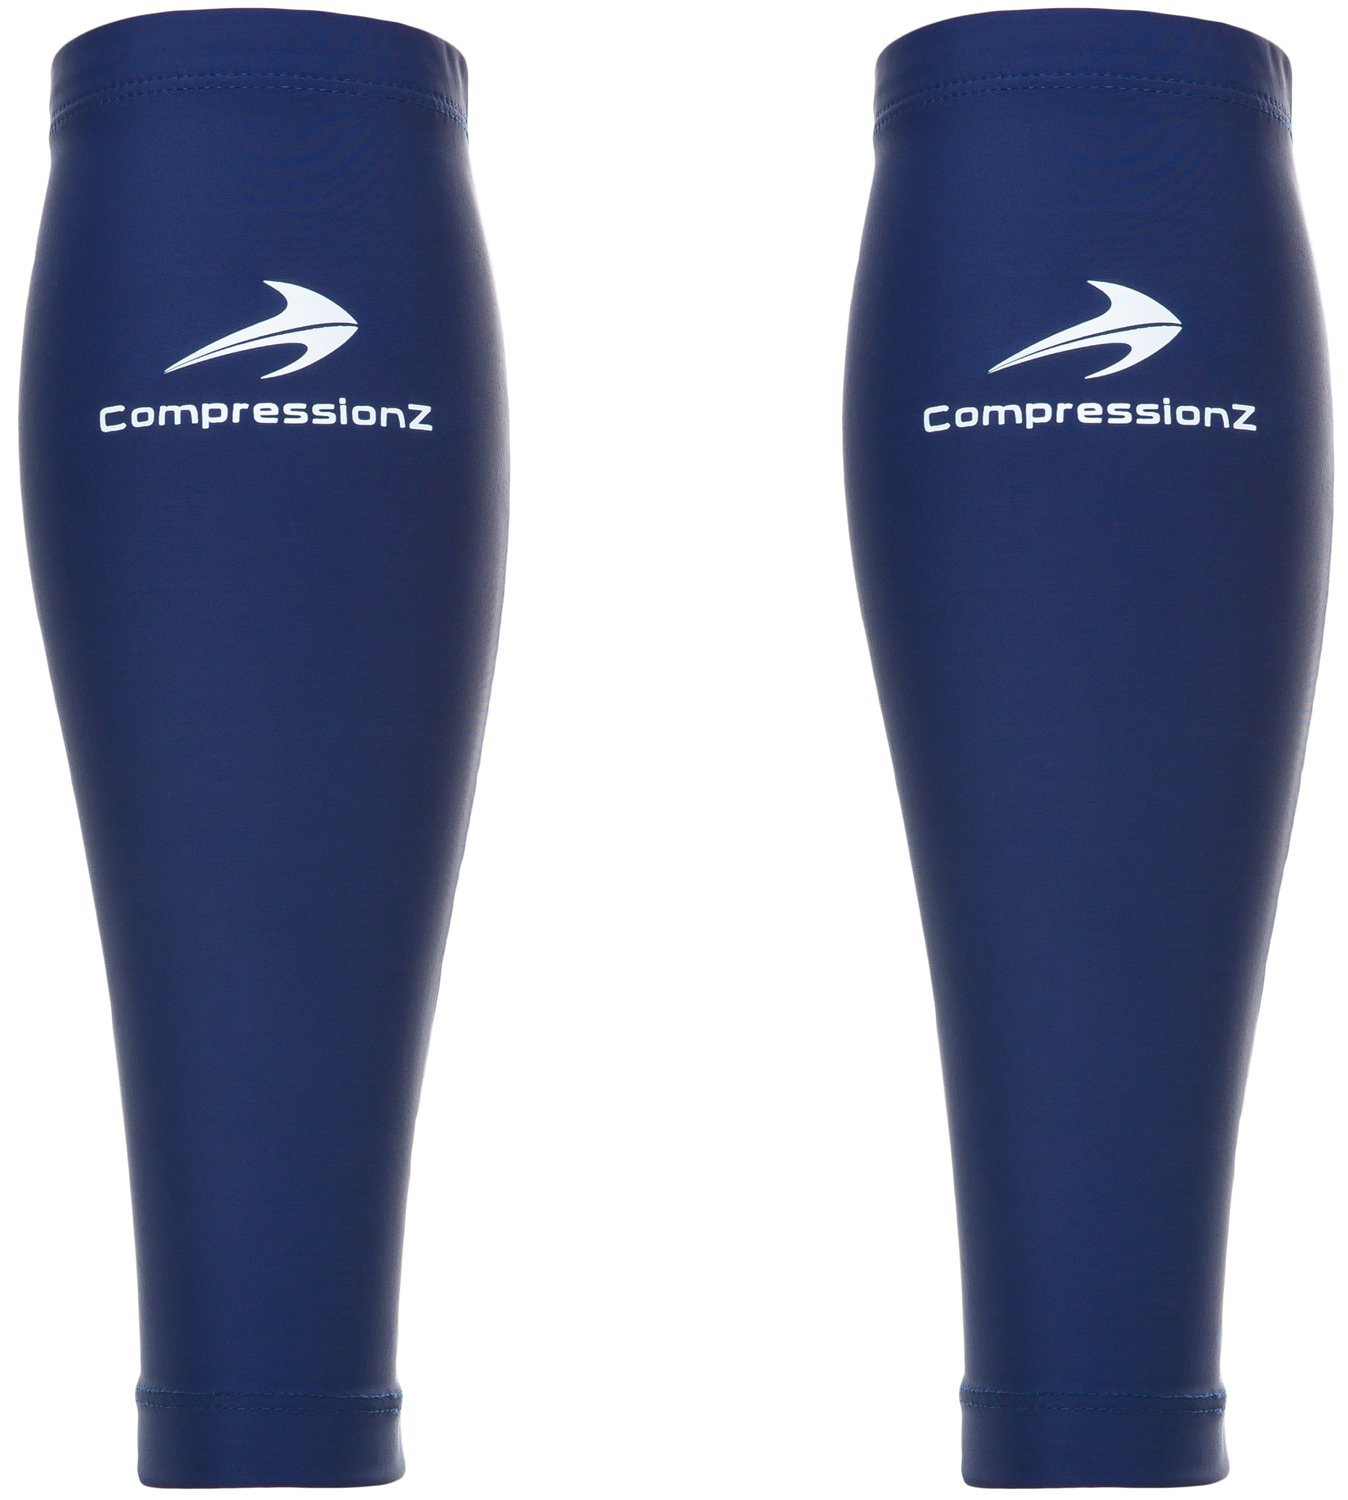 CompressionZ Calf Compression Sleeves (20-30mmhg) - Compression Socks for Shin Splints, Running, Nurses, Leg Pain & Pregnancy for Men, Women - Support Recovery and Improve Blood Circulation